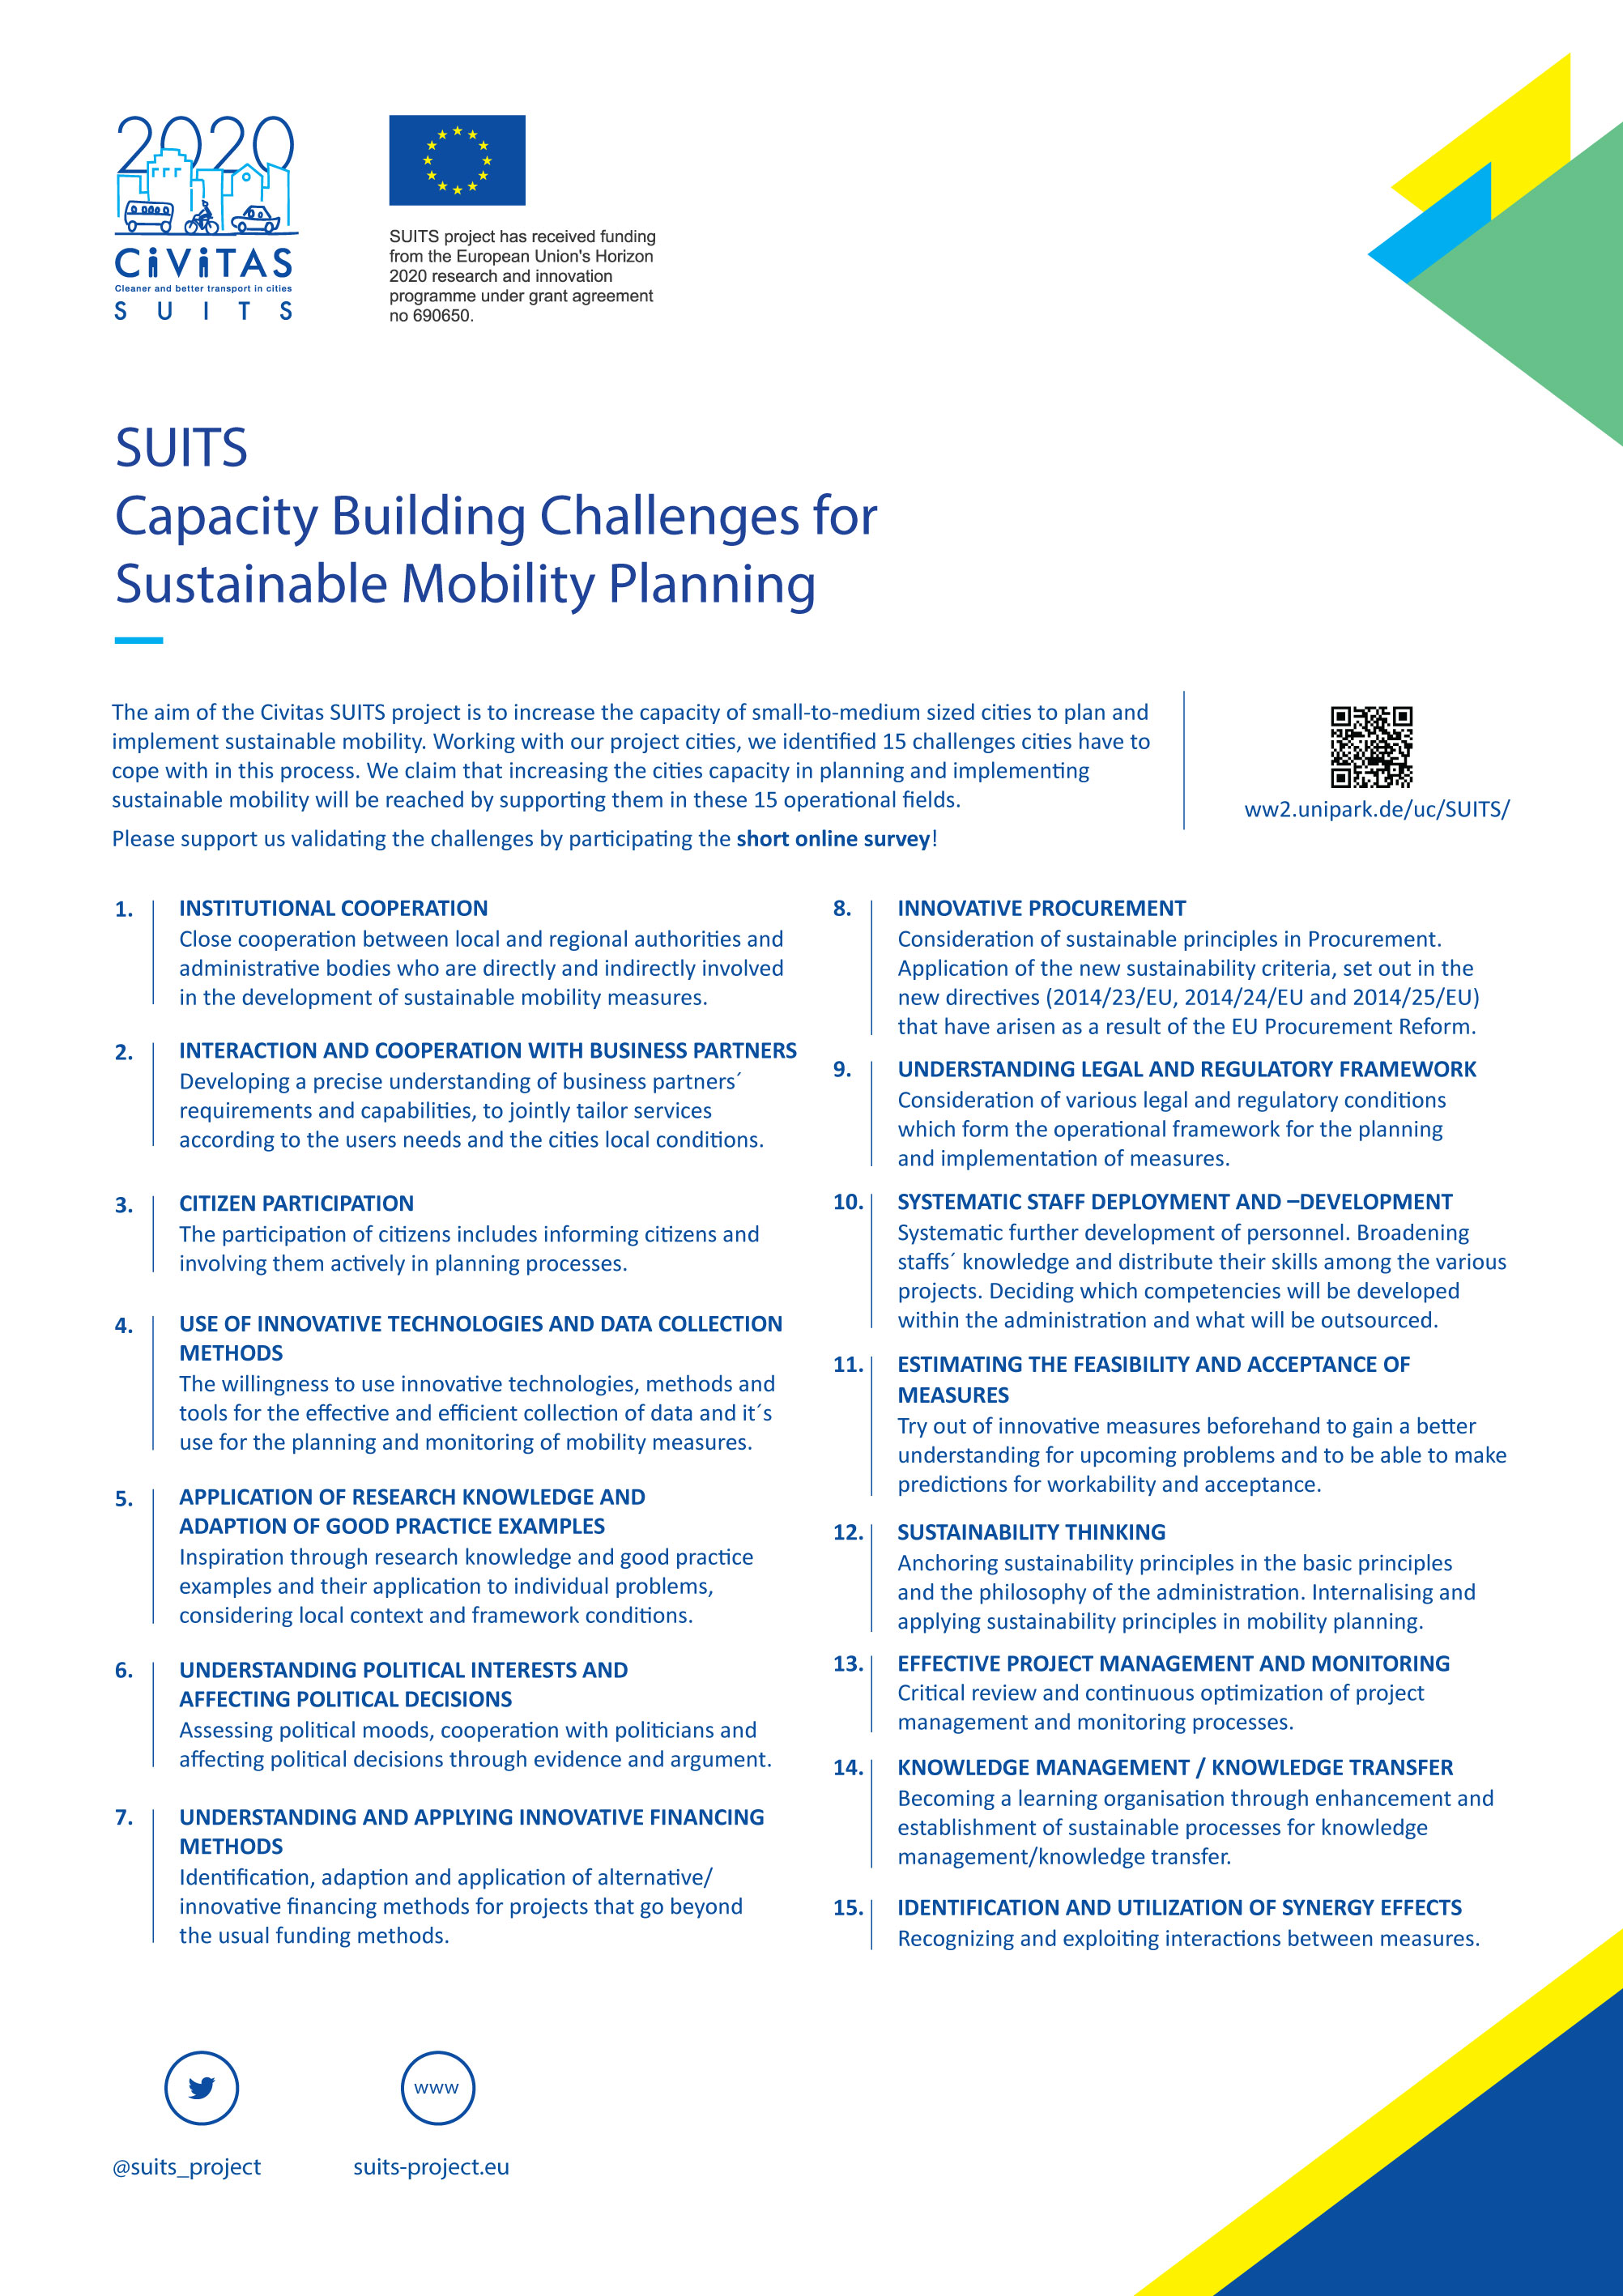 SUITS survey: Validate the capacity building challenges 4 sustainable Mobility Planning